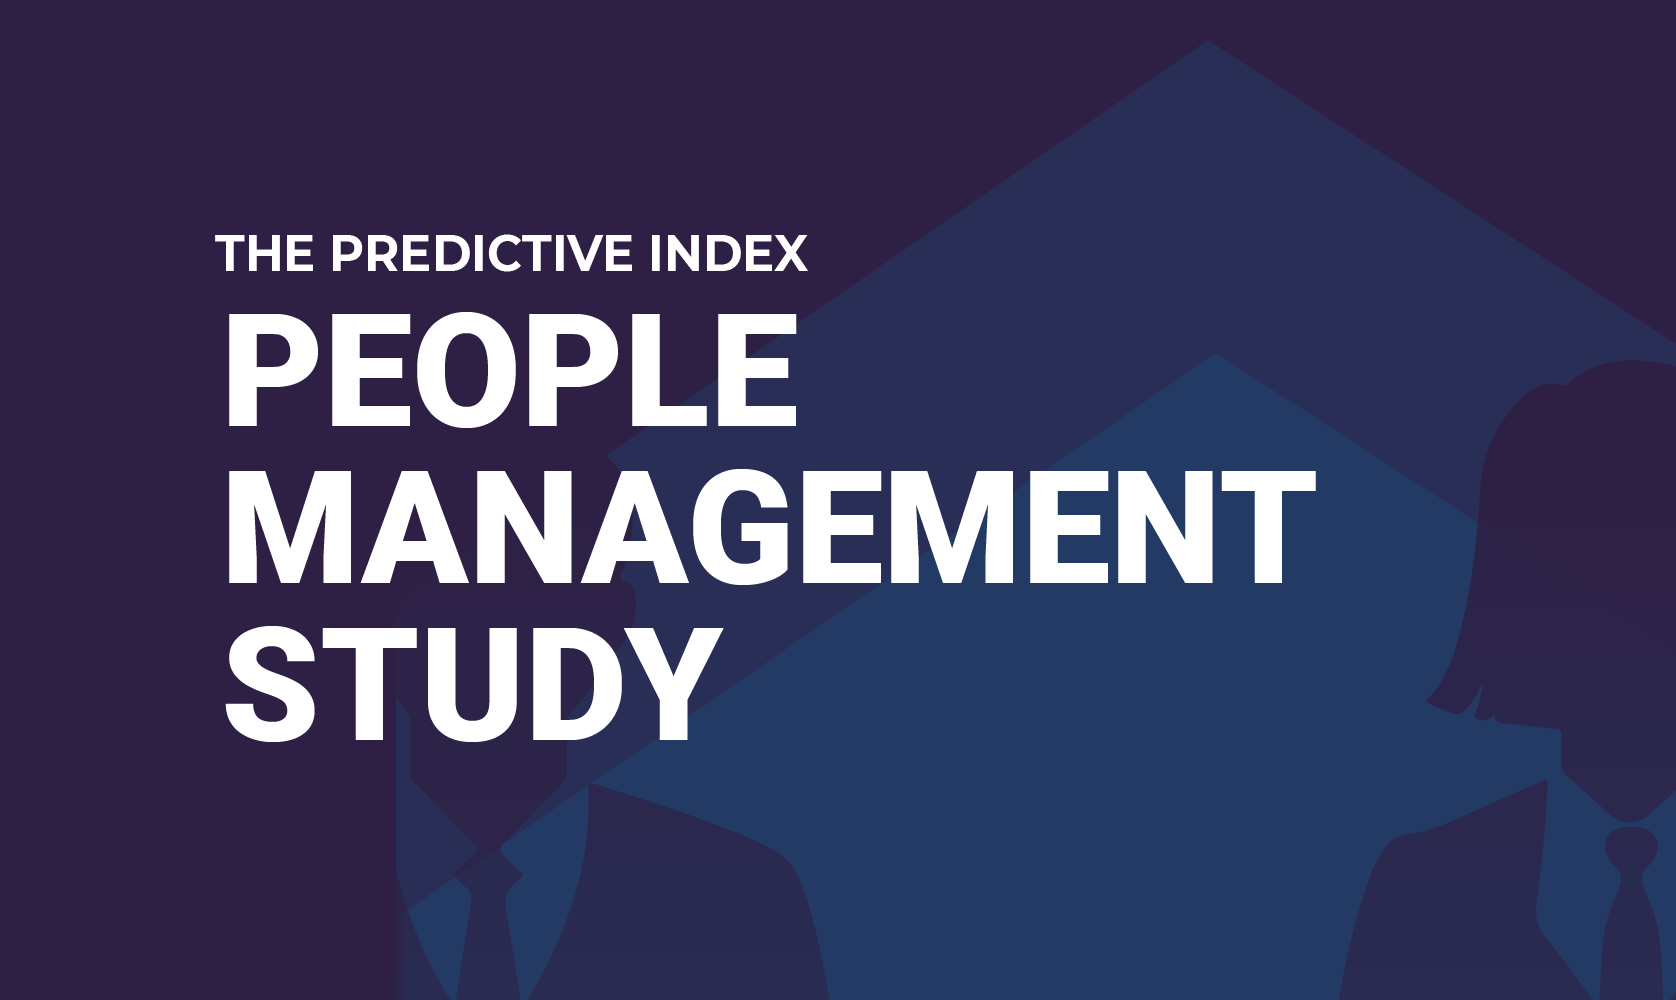 People Management Study Results | The Predictive Index